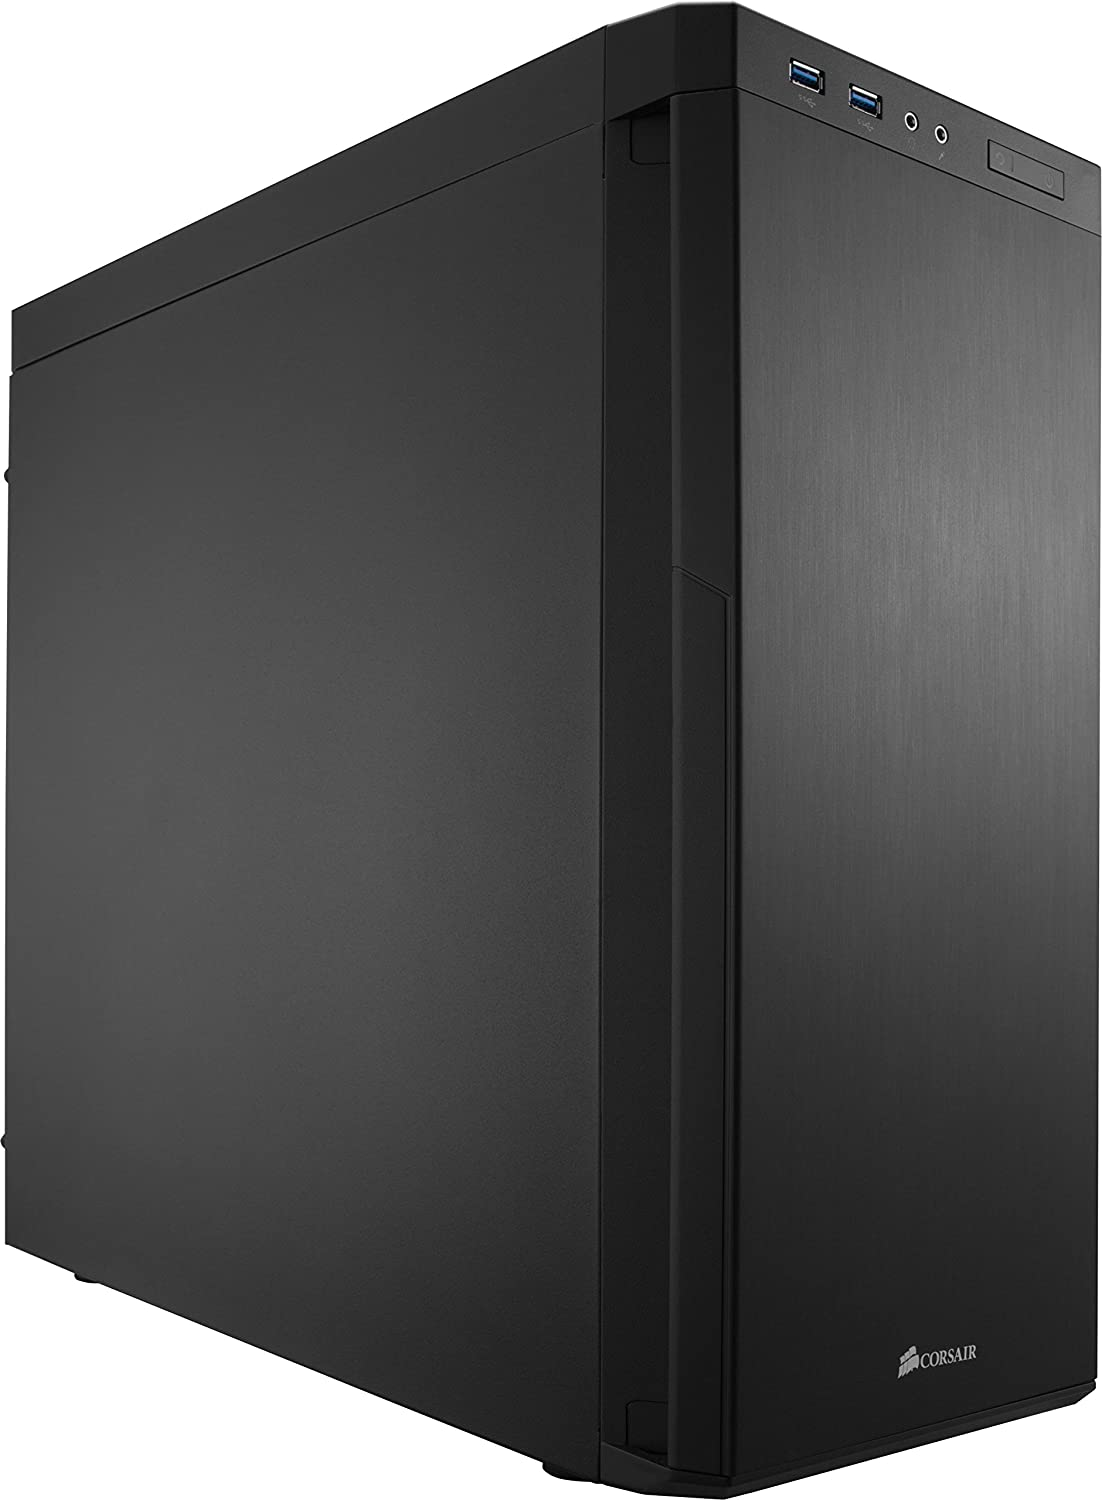 Corsair Carbide 330R Blackout Edition Case da Gaming